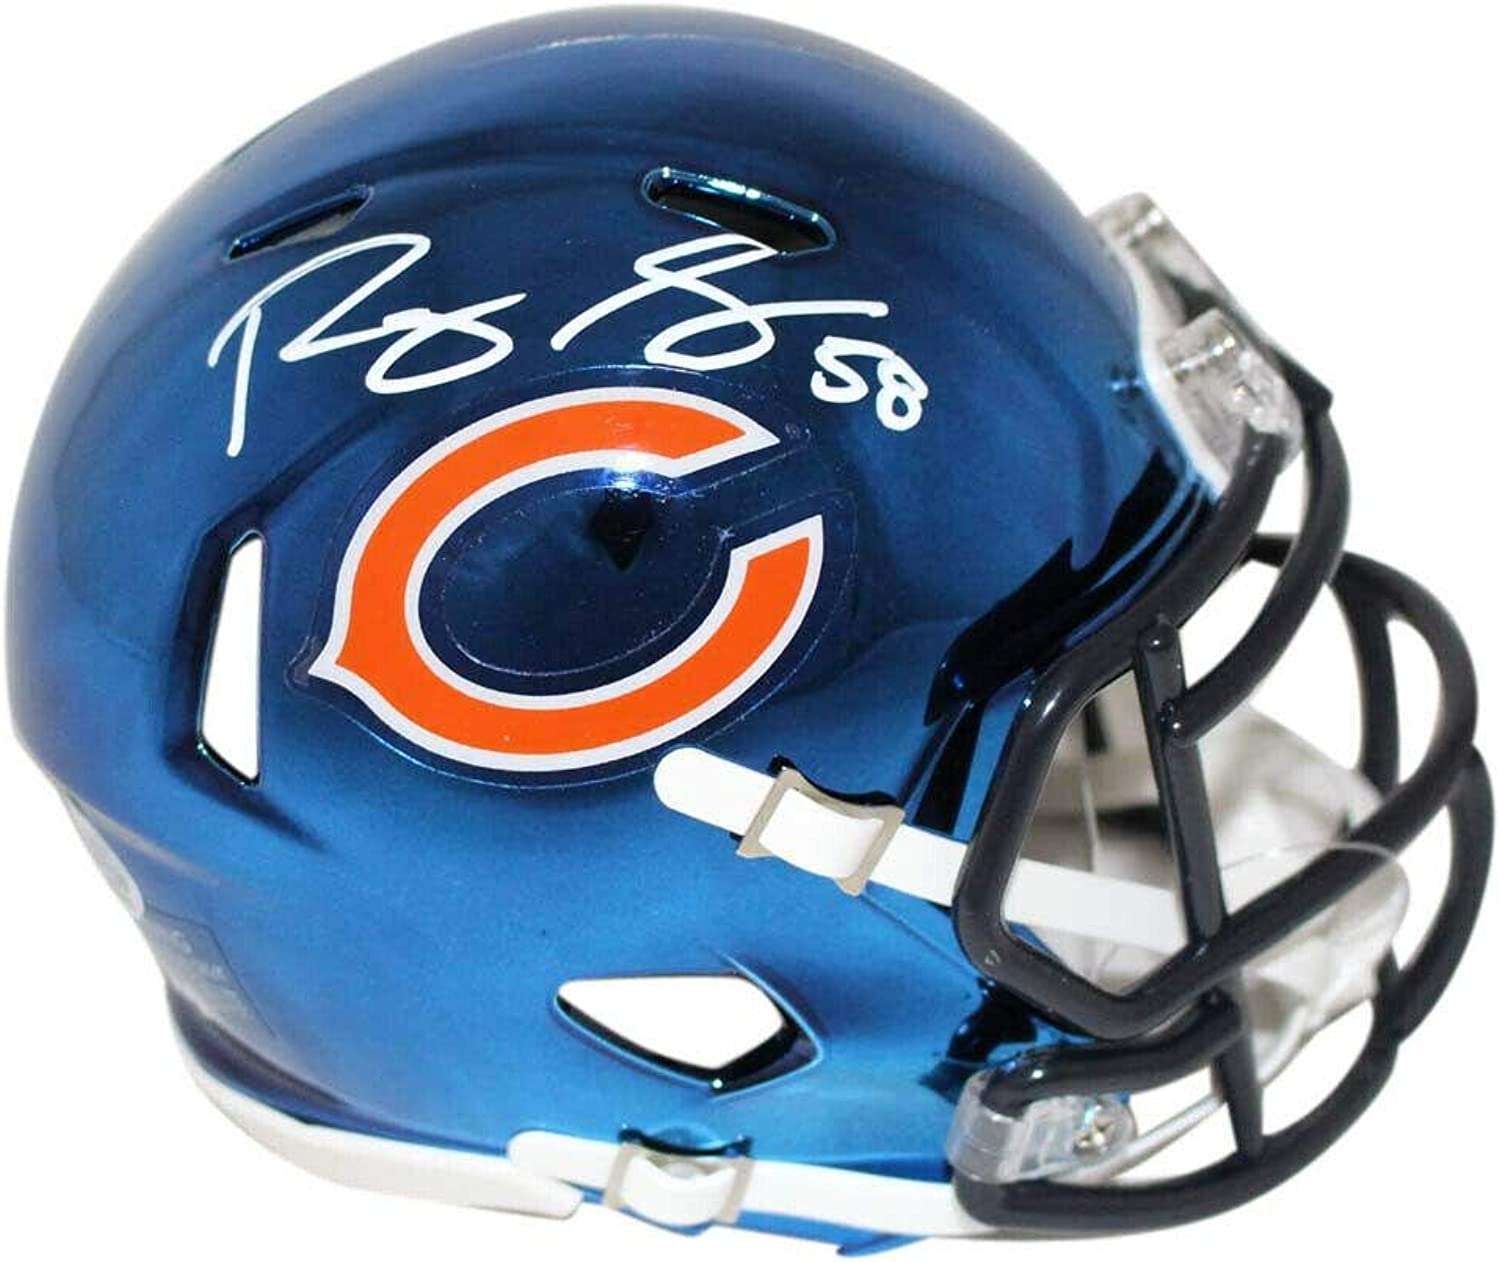 Signed Roquan Smith Mini HelmetChrome BAS 24106Beckett AuthenticationAutographed NFL Mini Helmets